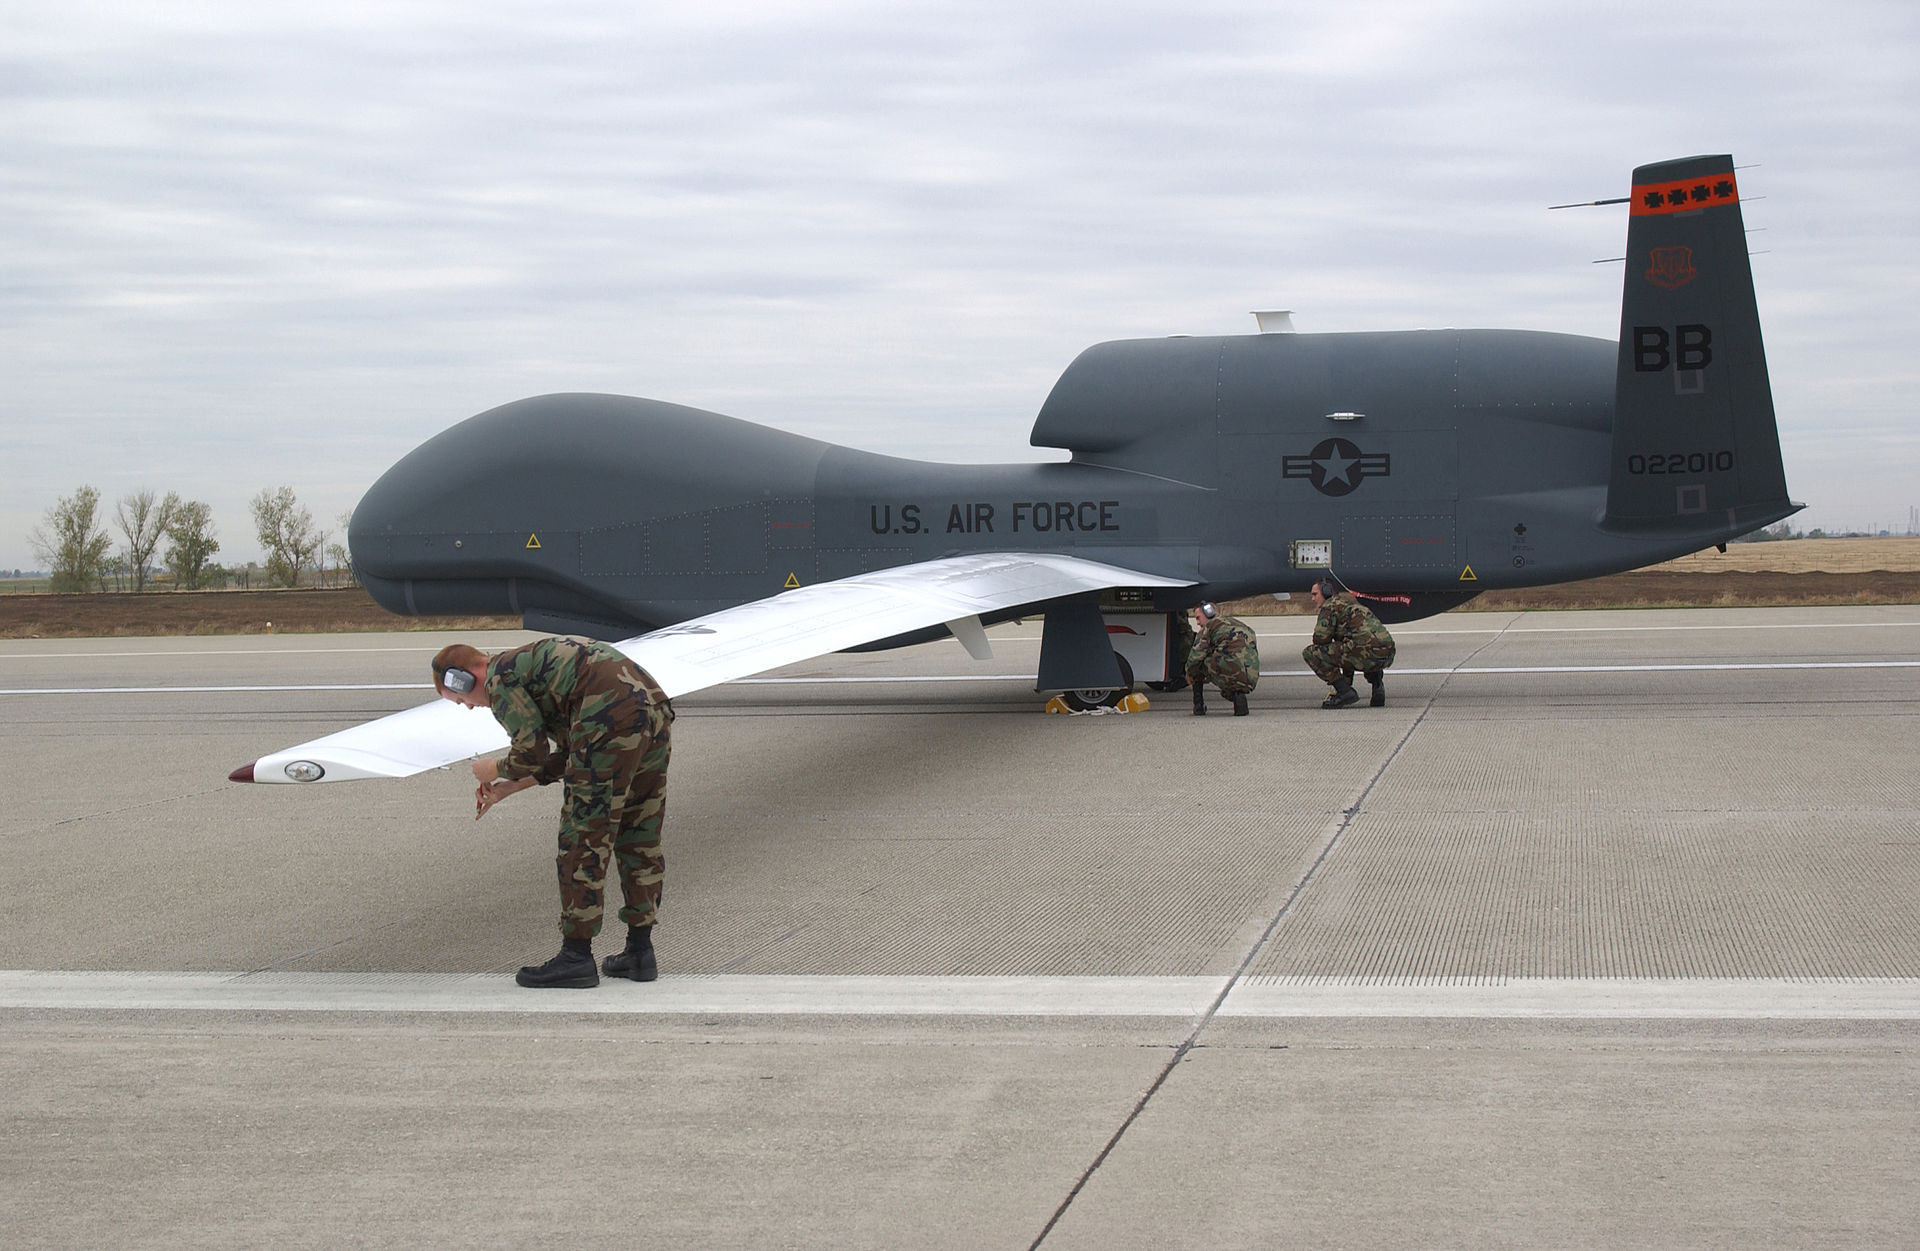 http://pl.wikipedia.org/wiki/RQ-4_Global_Hawk